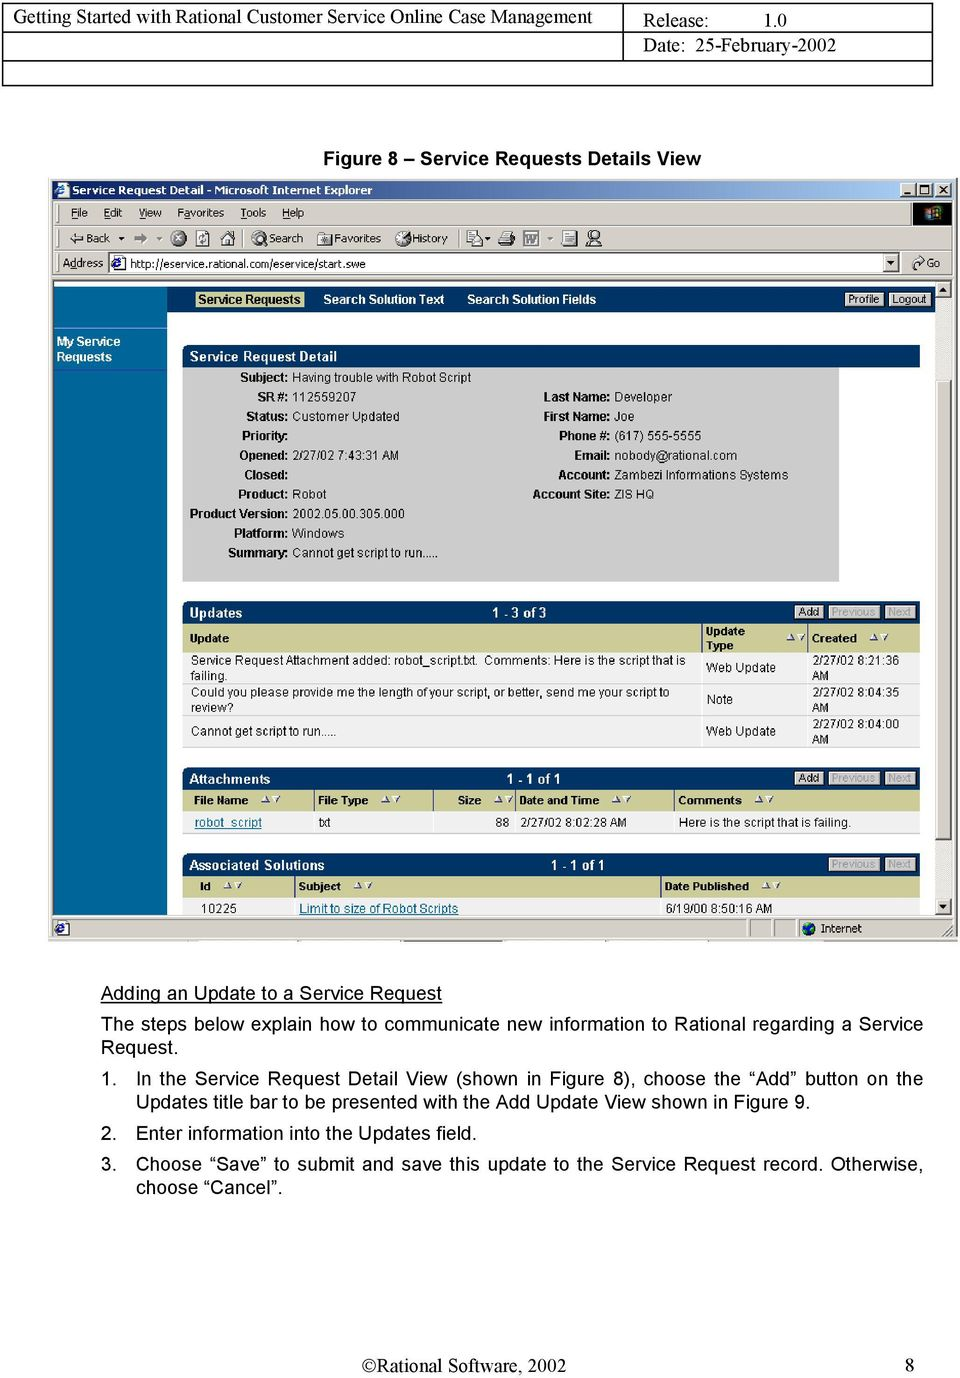 In the Service Request Detail View (shown in Figure 8), choose the Add button on the Updates title bar to be presented with the